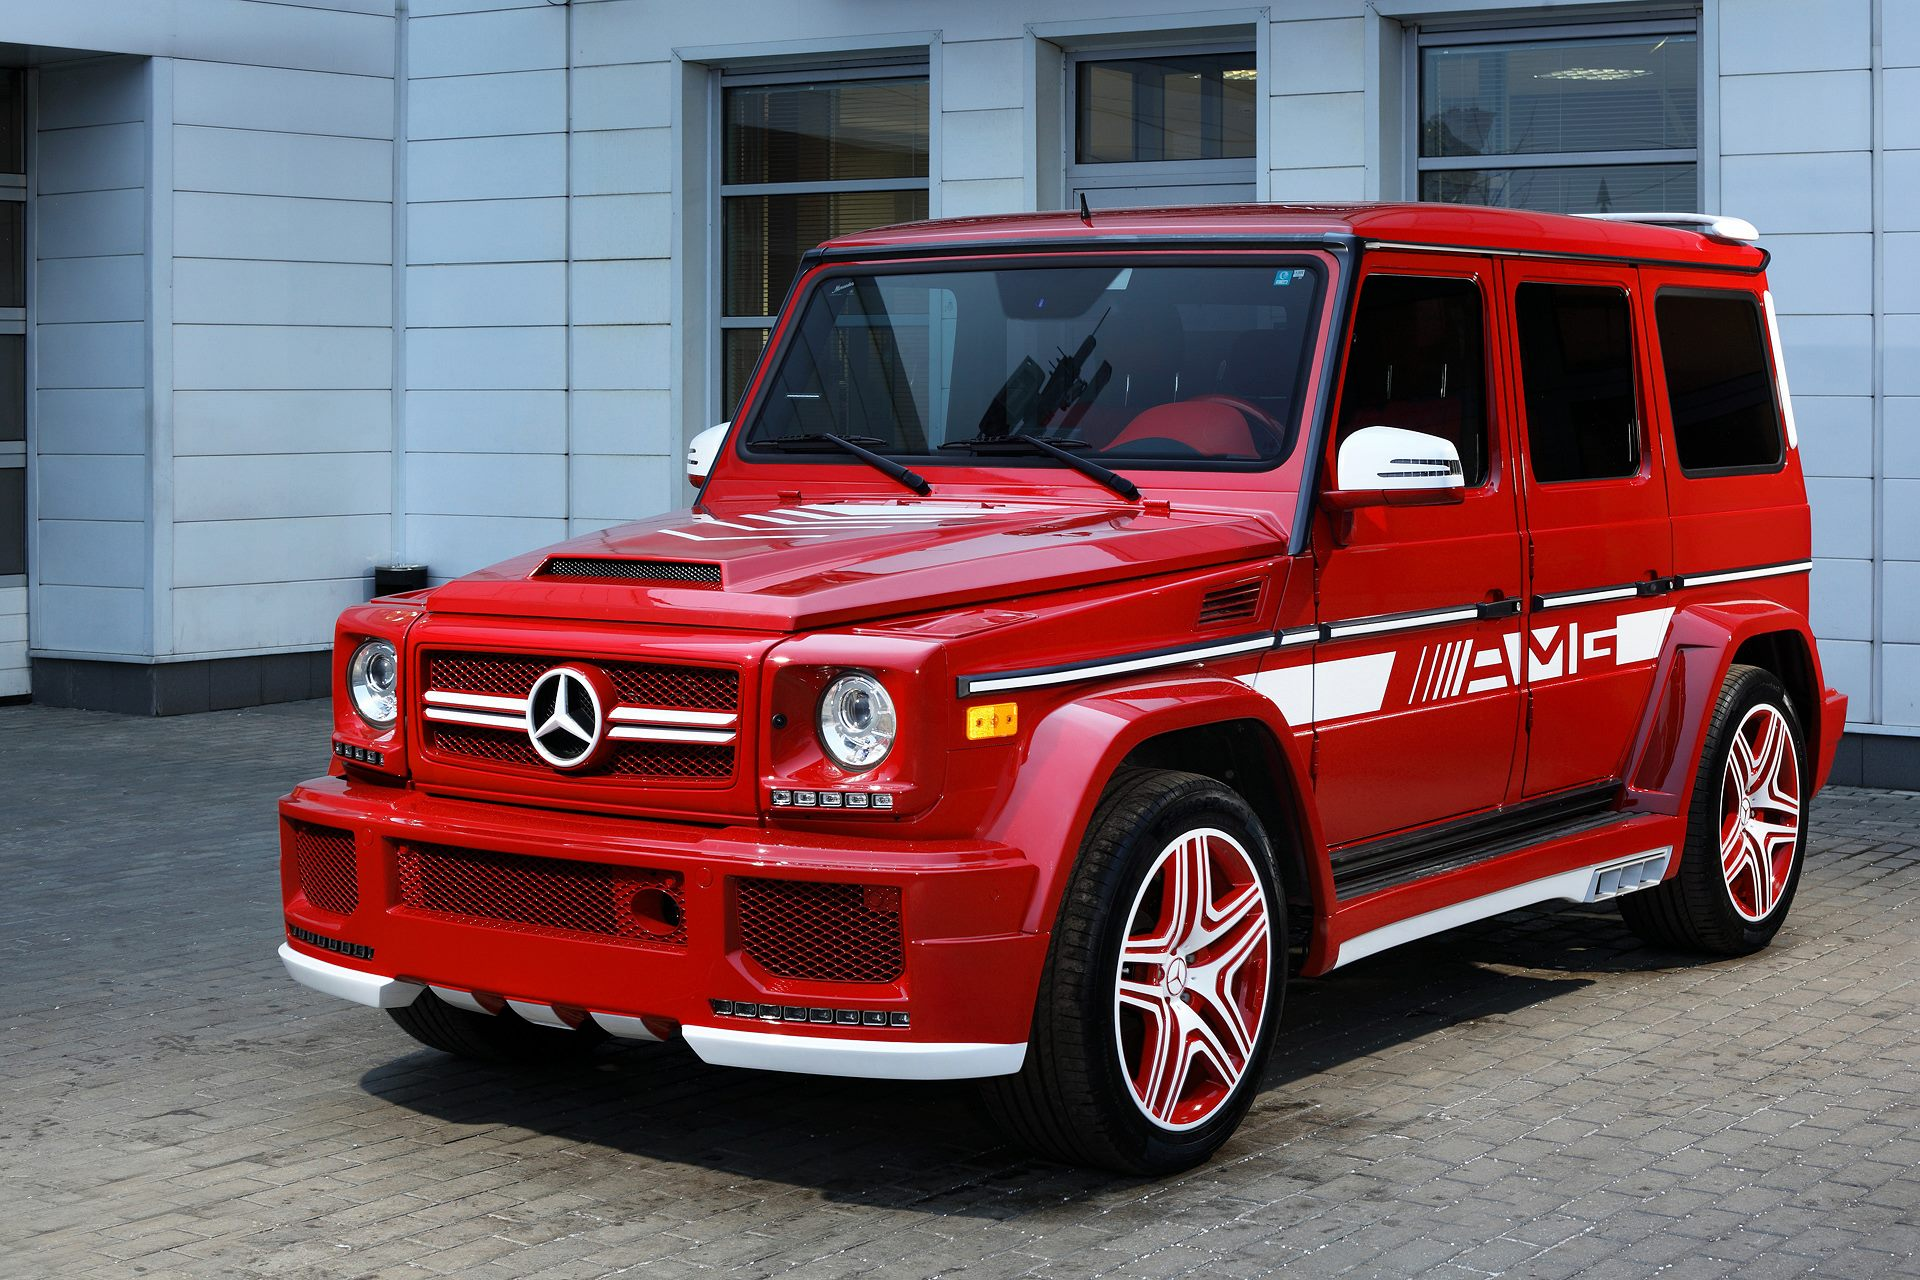 G63 AMG with Hamann Body Kit and Topcar Interior Is a Red Russian